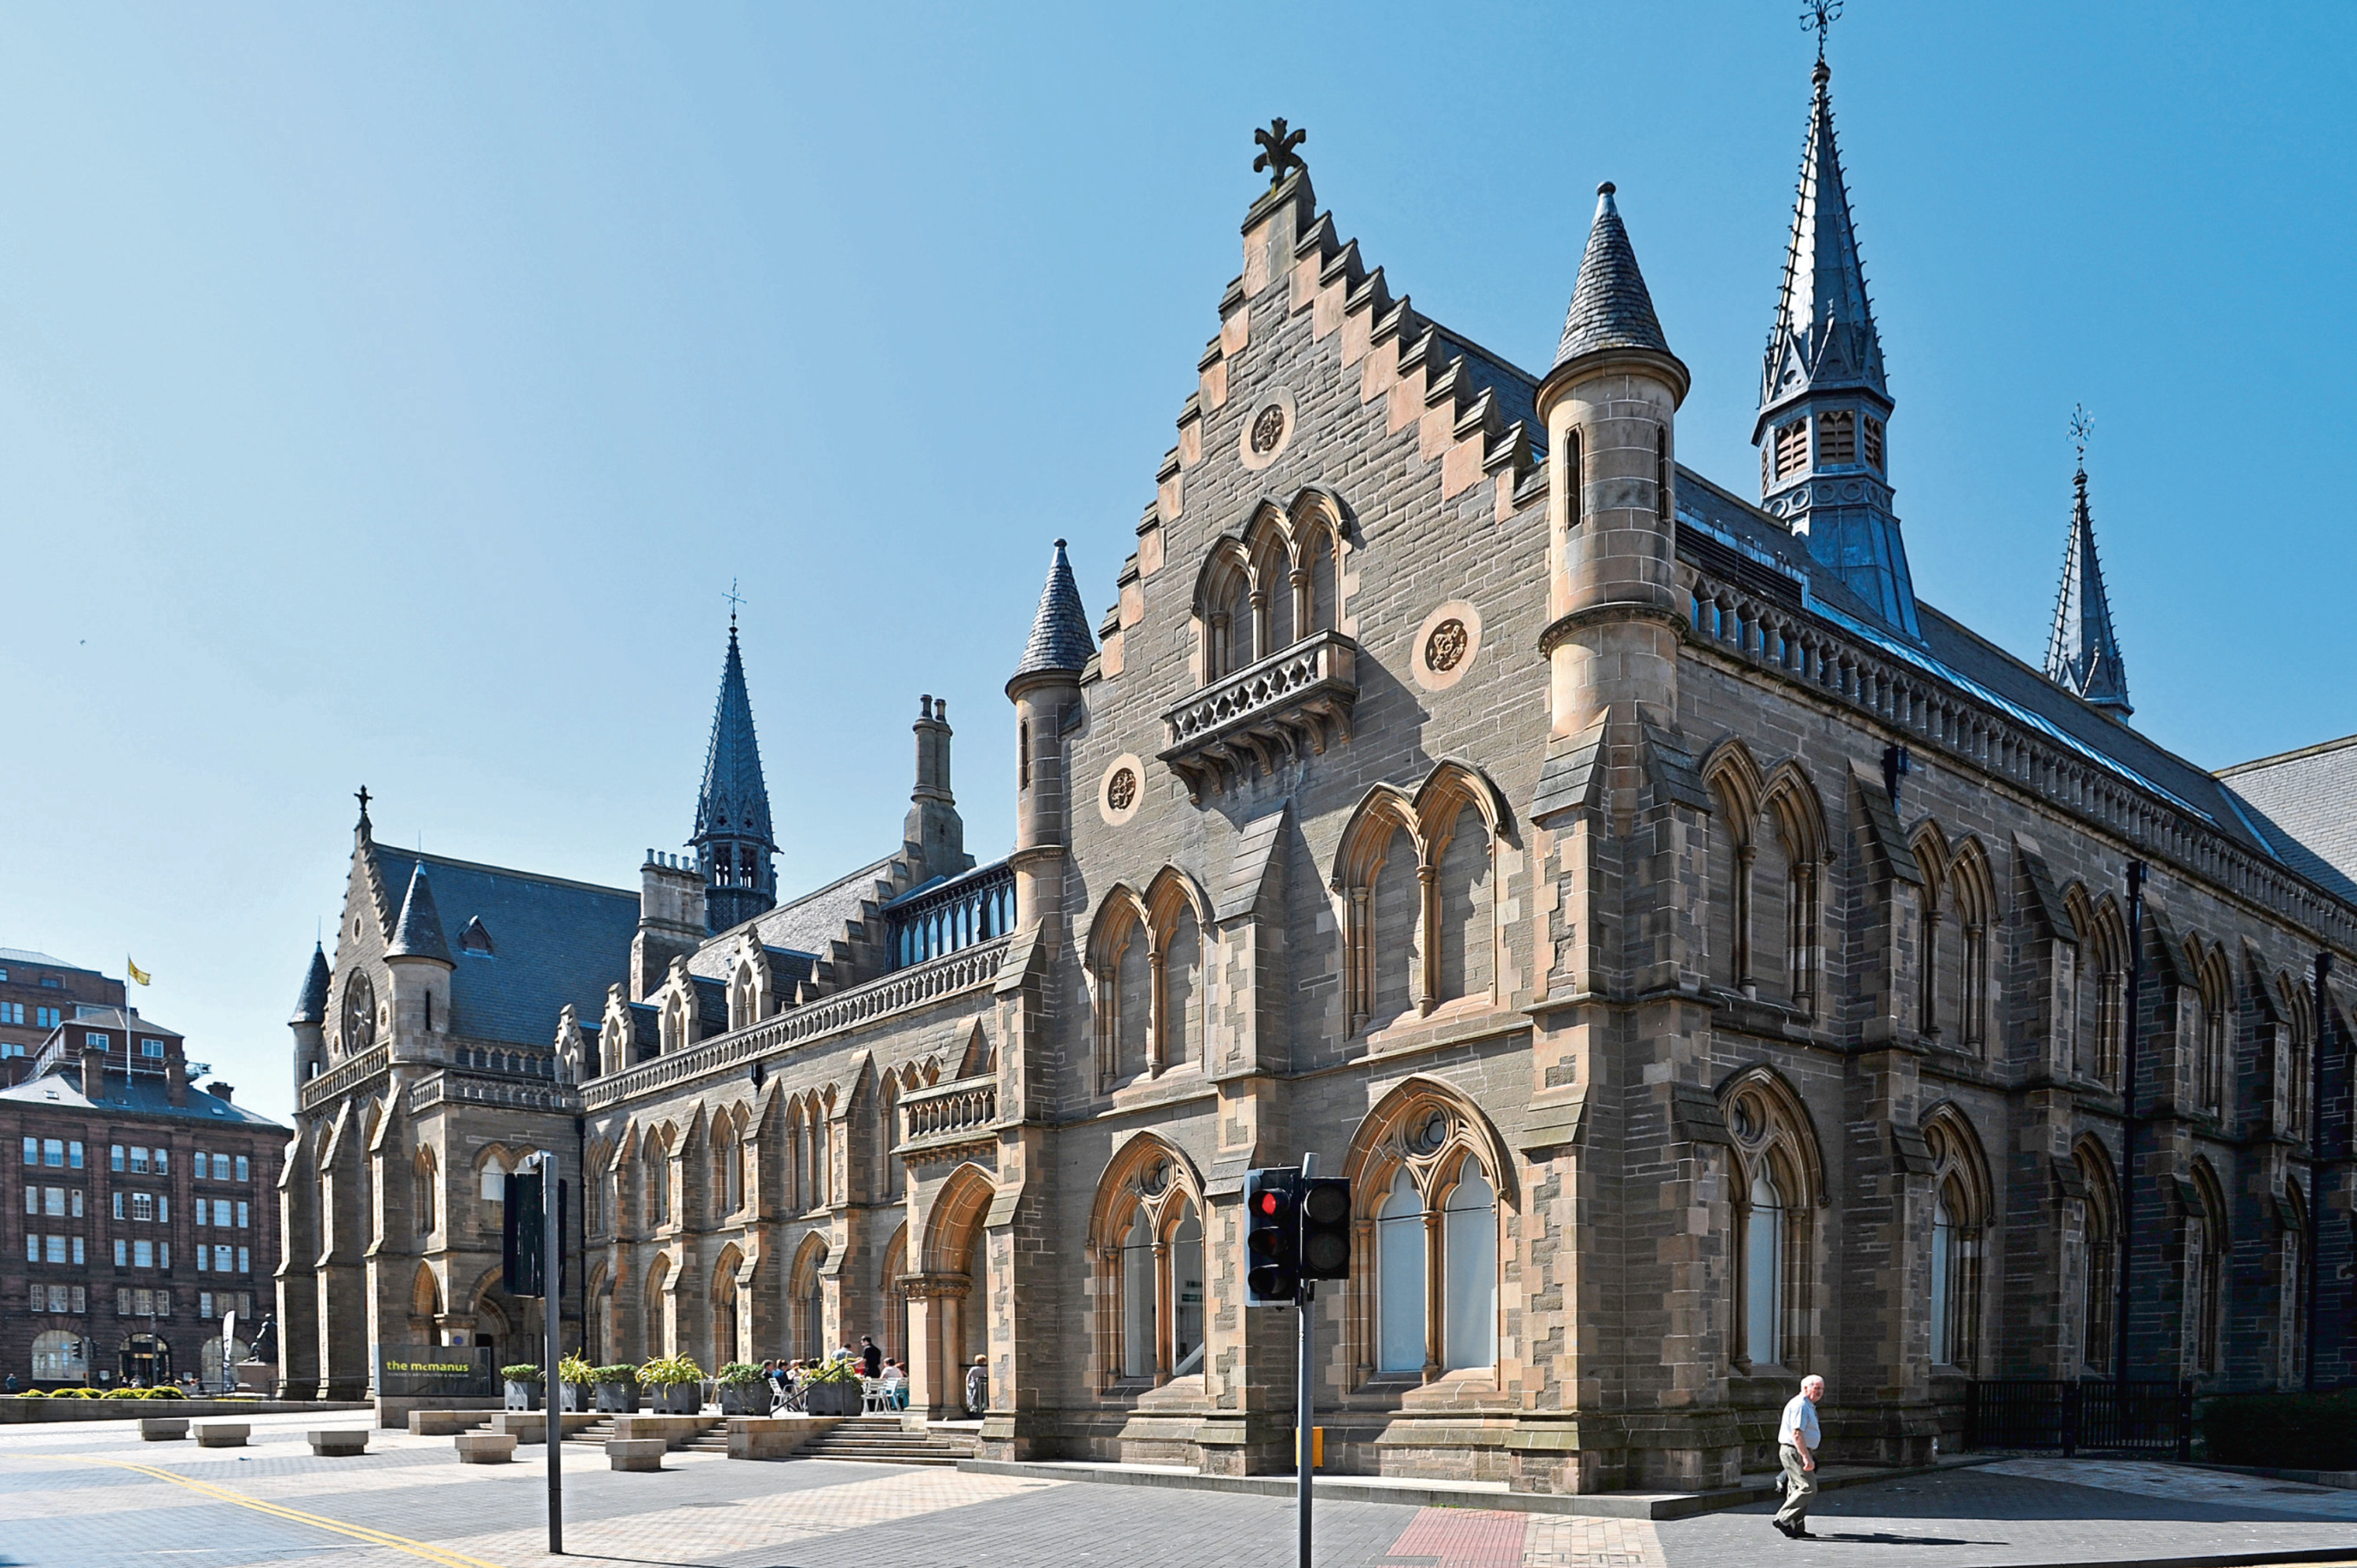 The McManus Gallery is one of the facilities Leisure and Culture Dundee operates.